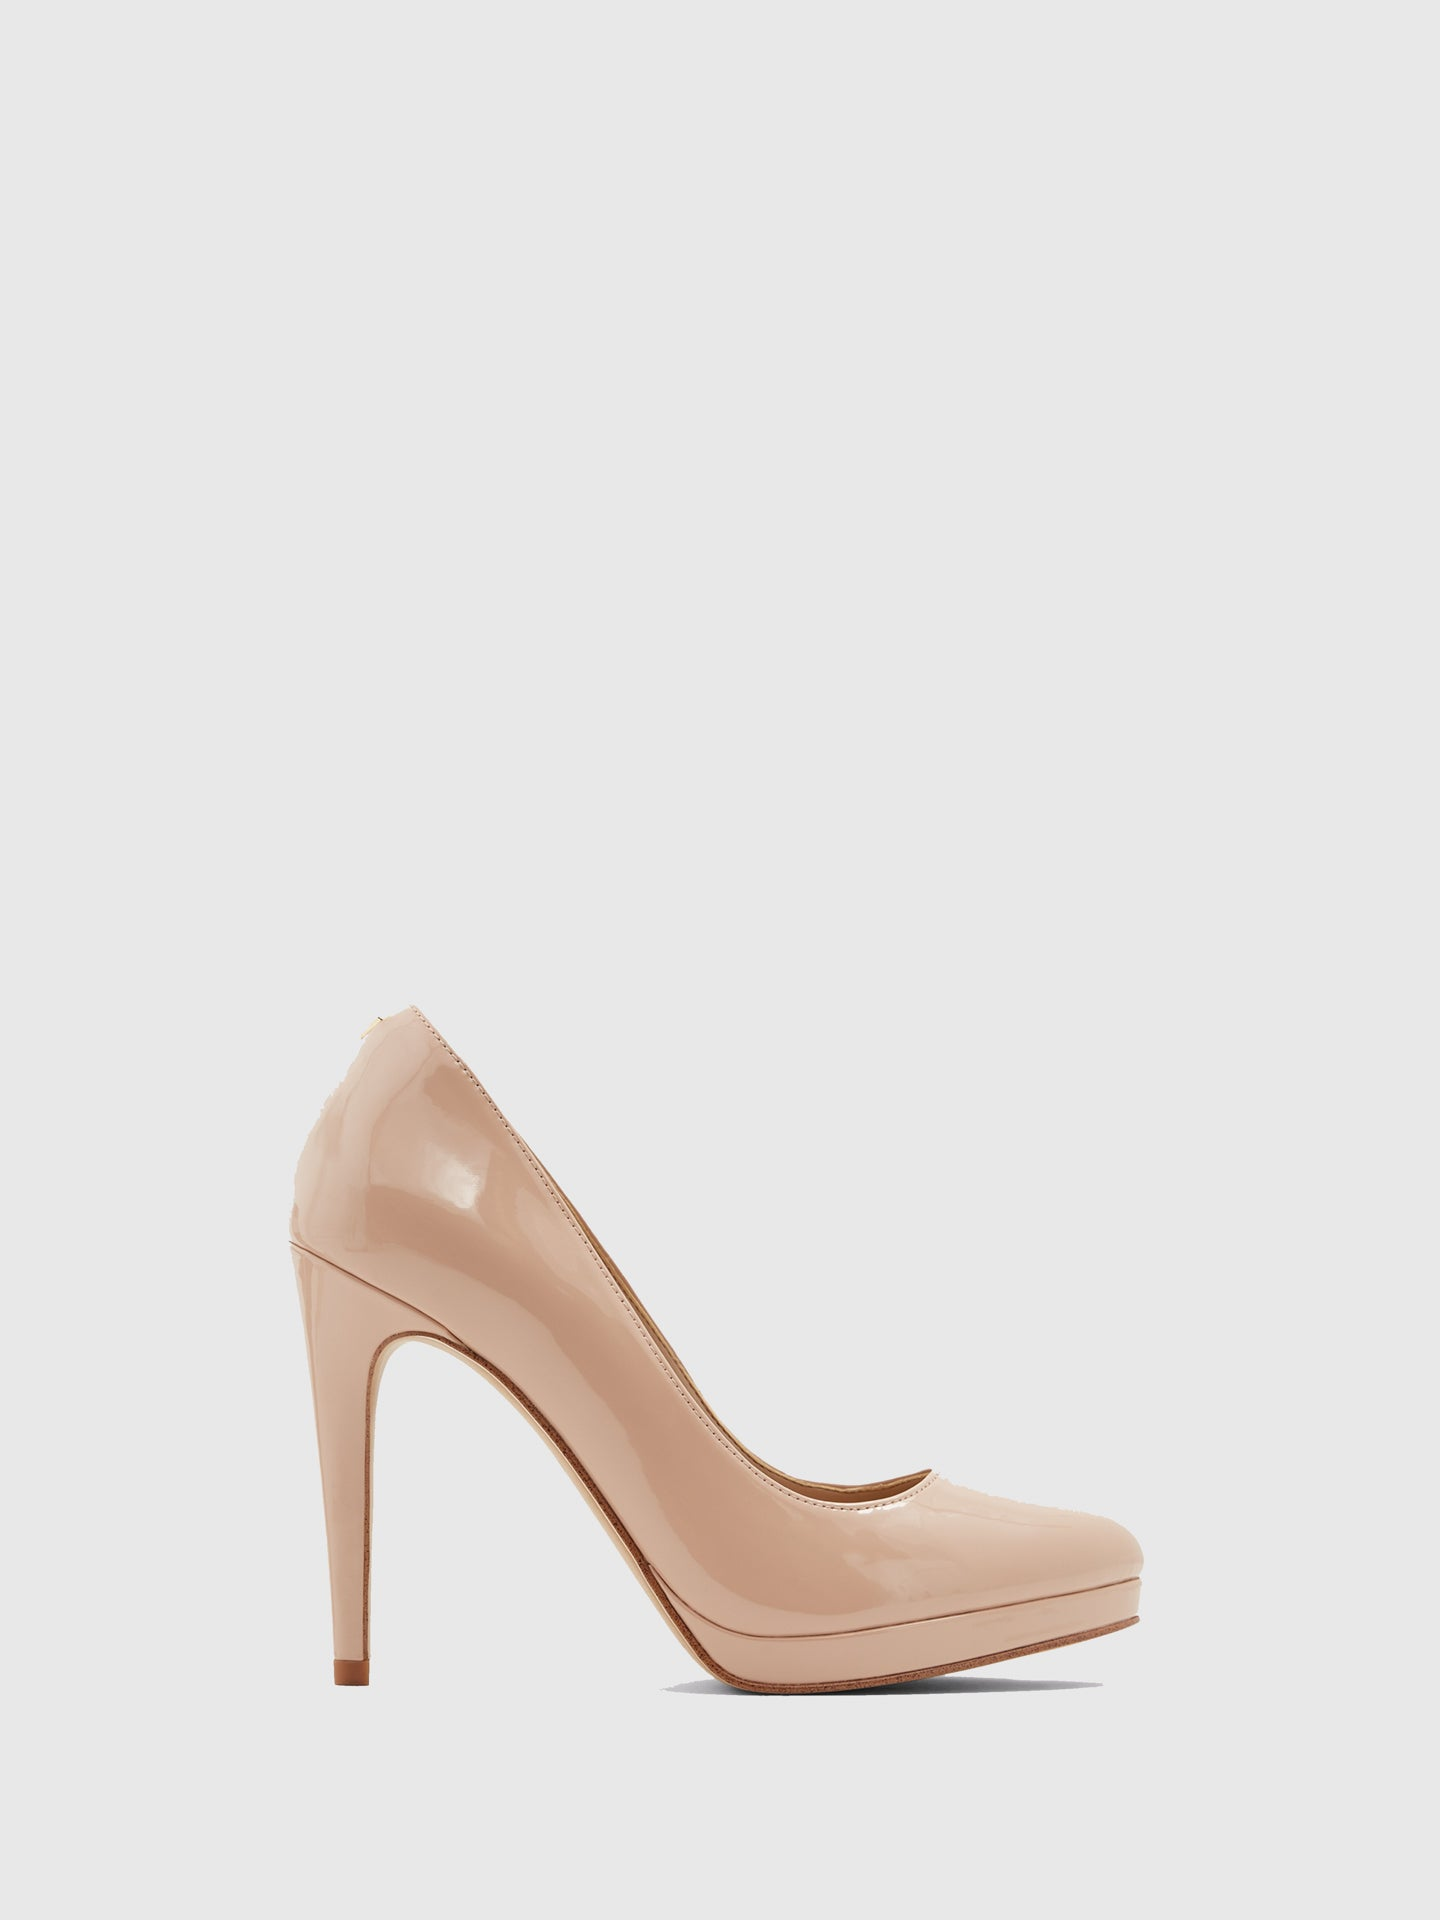 Aldo Wheat Classic Pumps